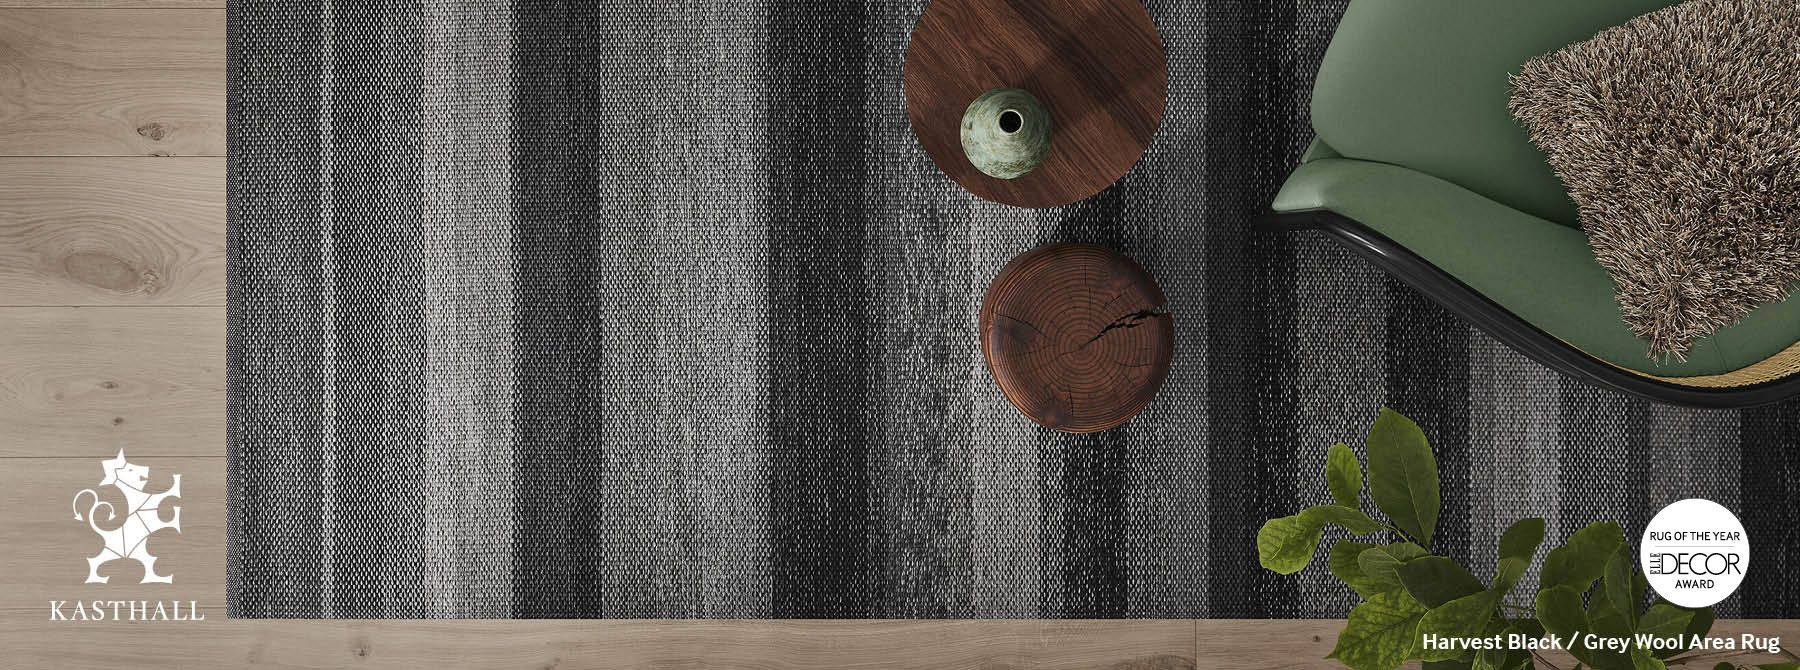 Kasthall Woven Wool Rugs & Carpets / Sweden